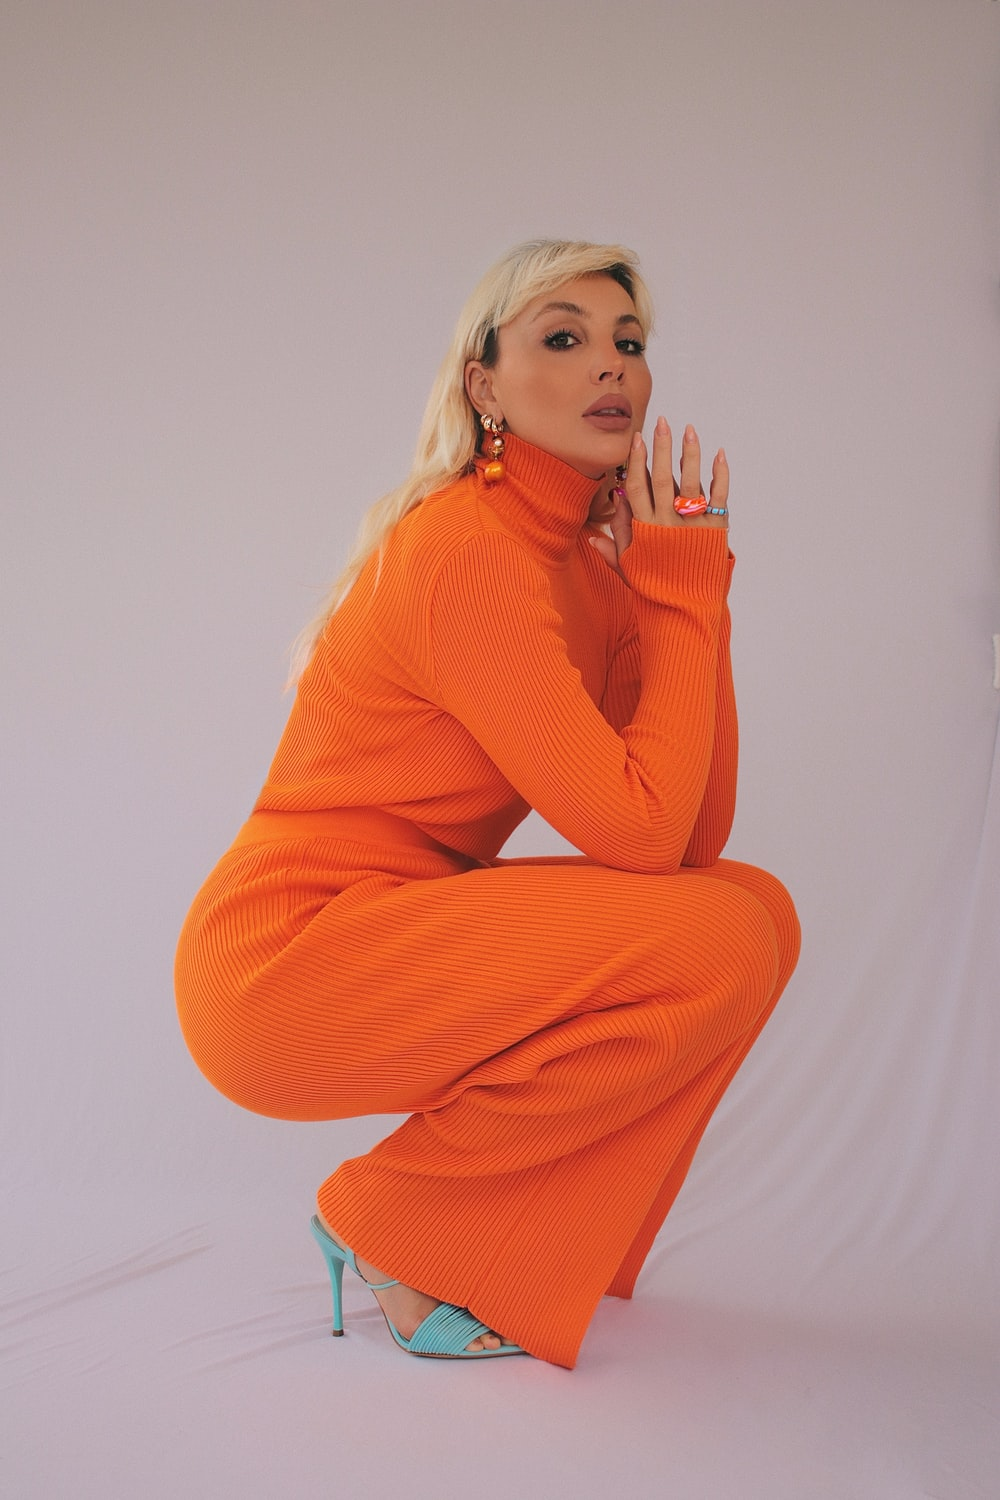 woman in orange sweater and brown pants sitting on white floor